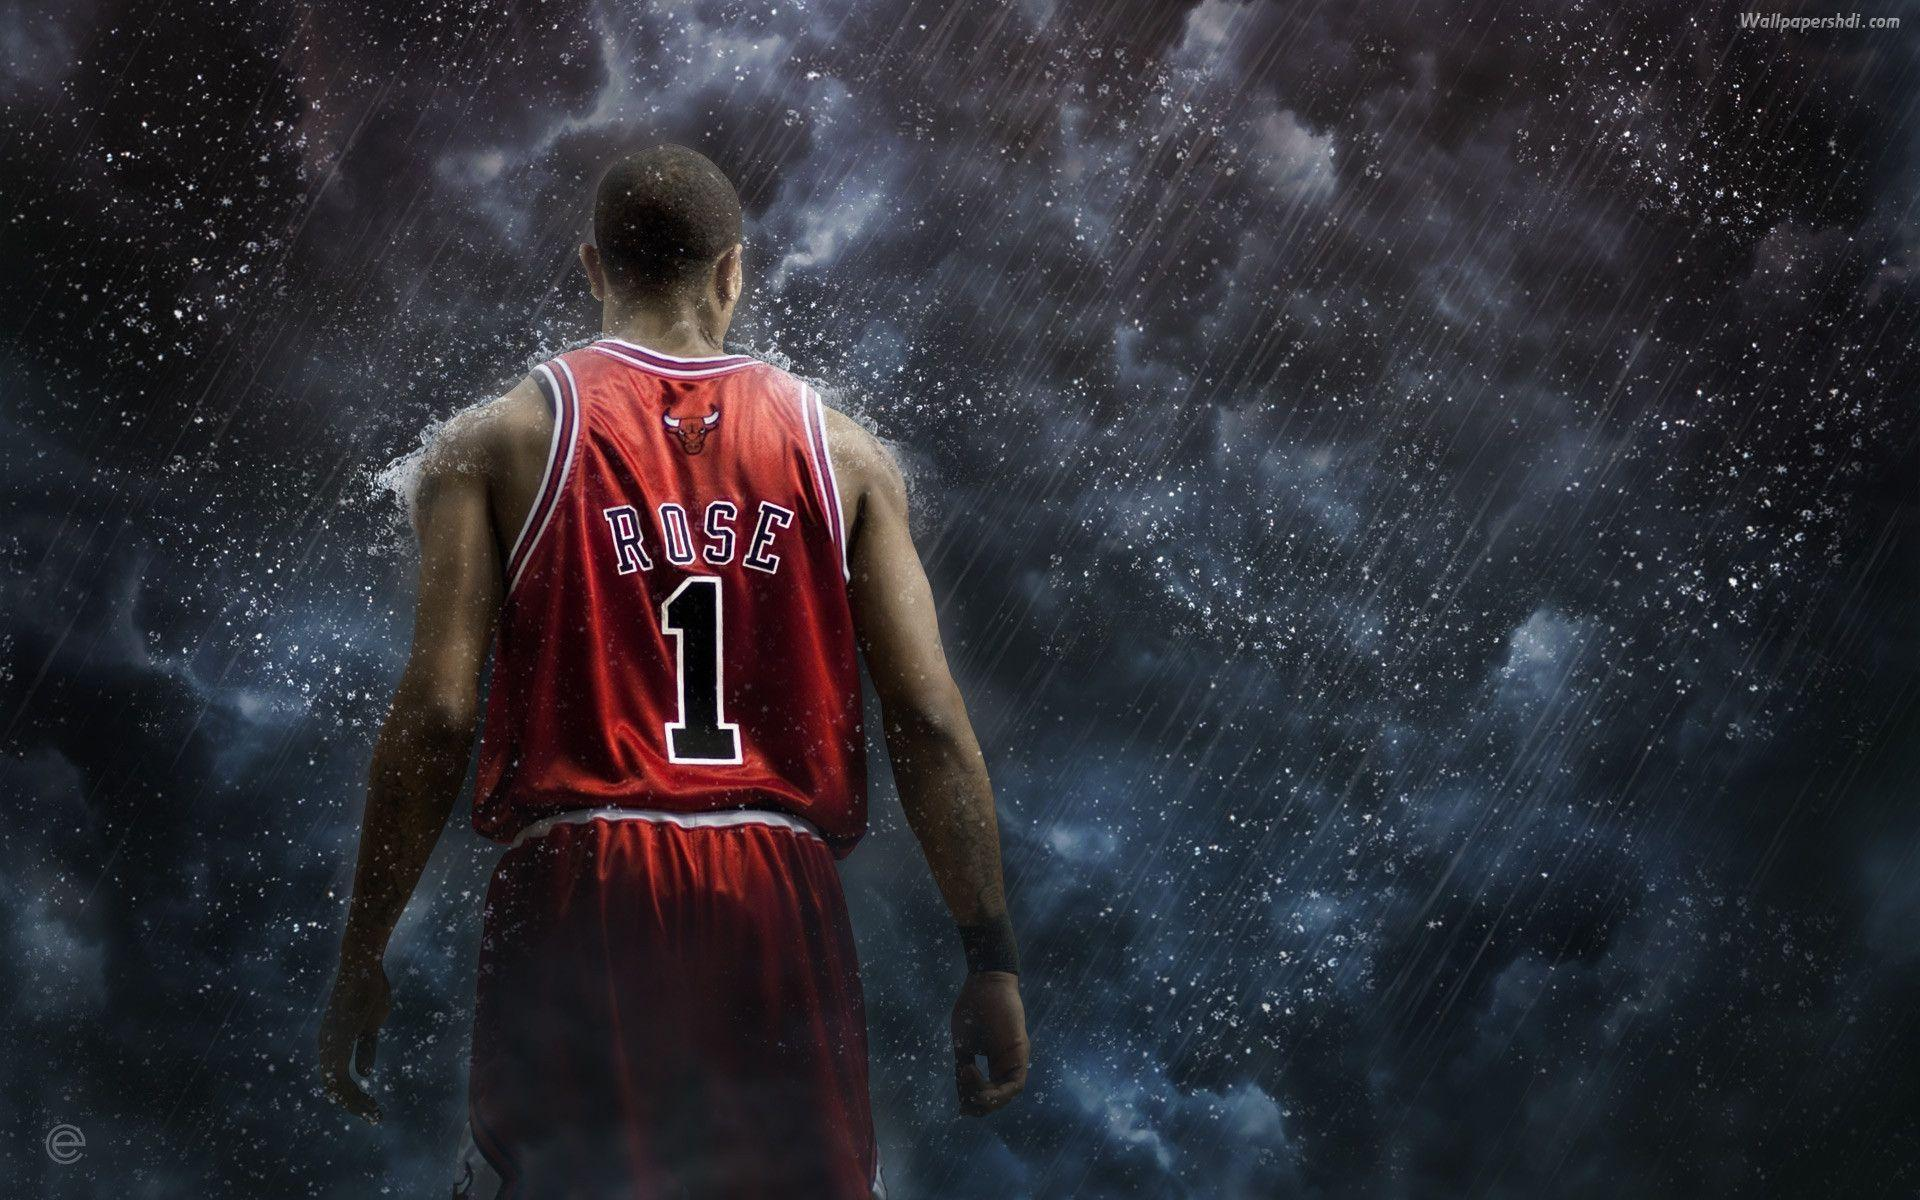 Derrick Rose Wallpapers 2015 HD 1920x1200